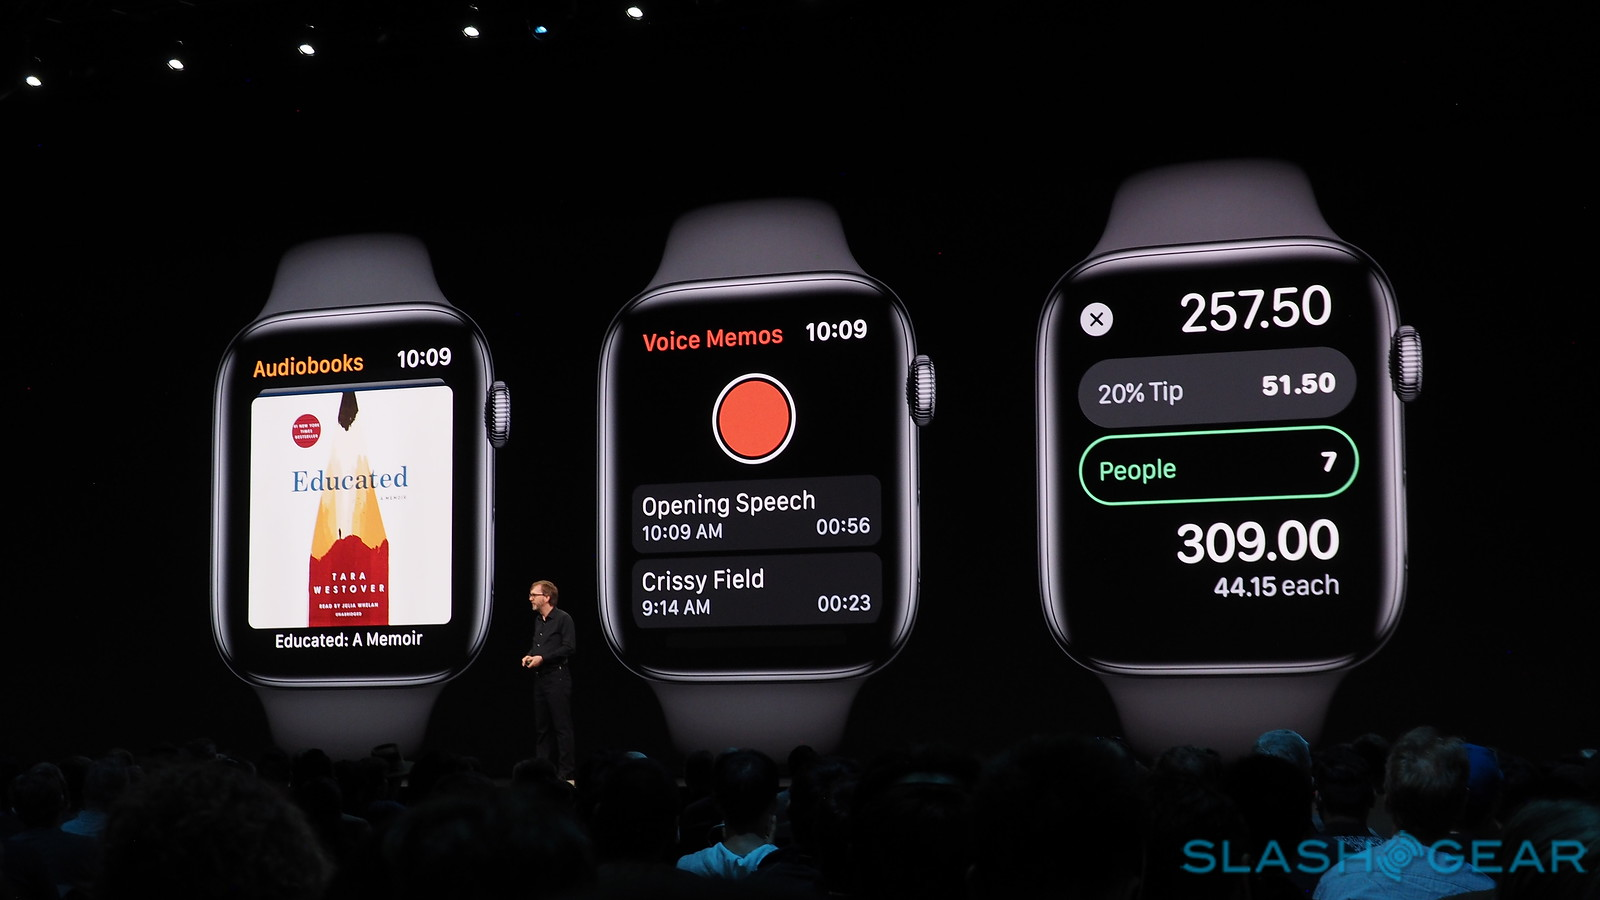 Apple Watch gets new faces, Apple apps in watchOS 6 - SlashGear